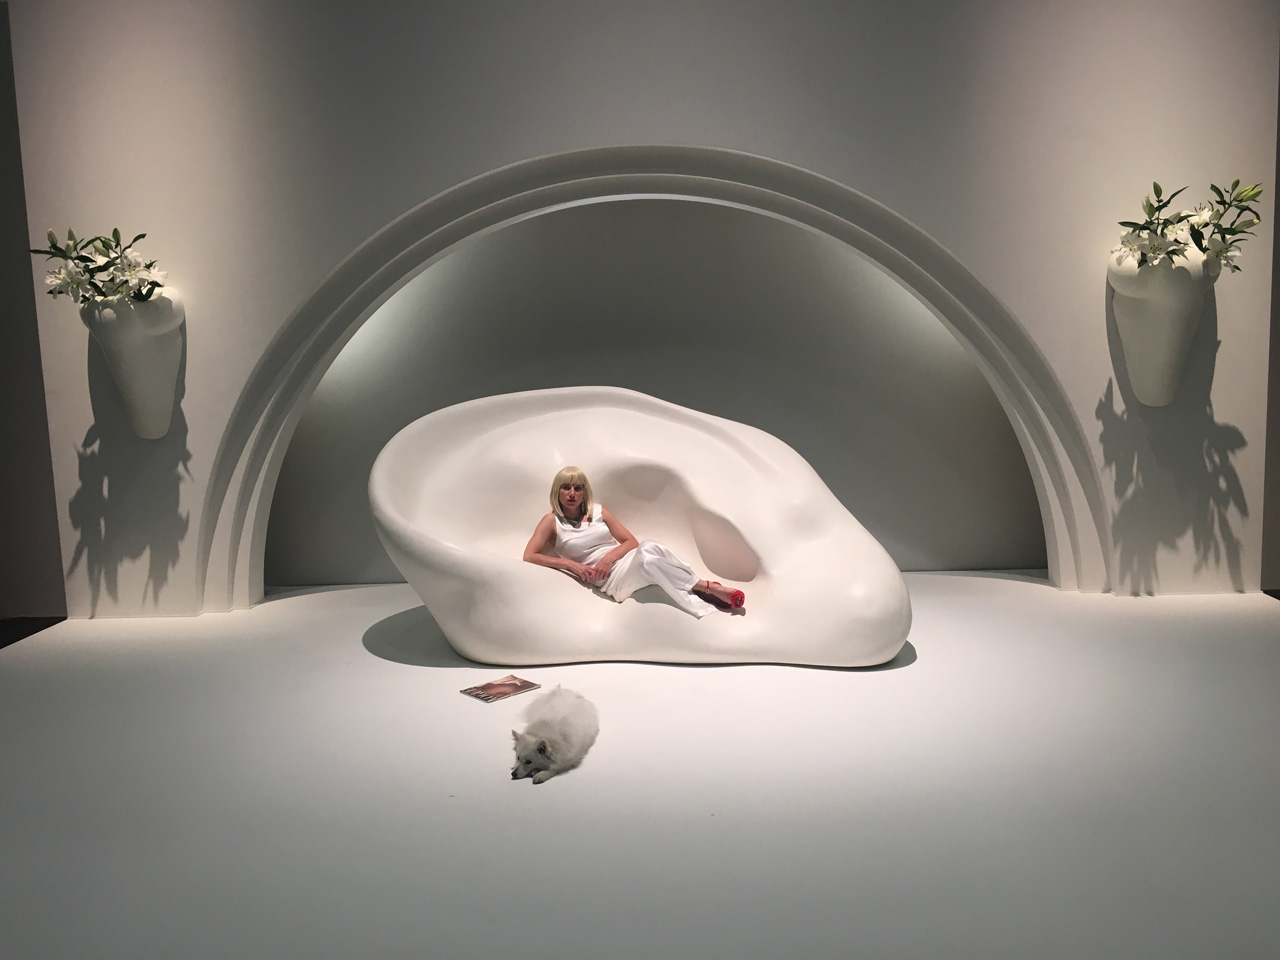 John Baldessari, Ear Sofa; Nose Sconces with Flowers (in Stage Setting), 2009/2017. Courtesy: Marian Goodman, New York, Sprüth Magers, Berlin